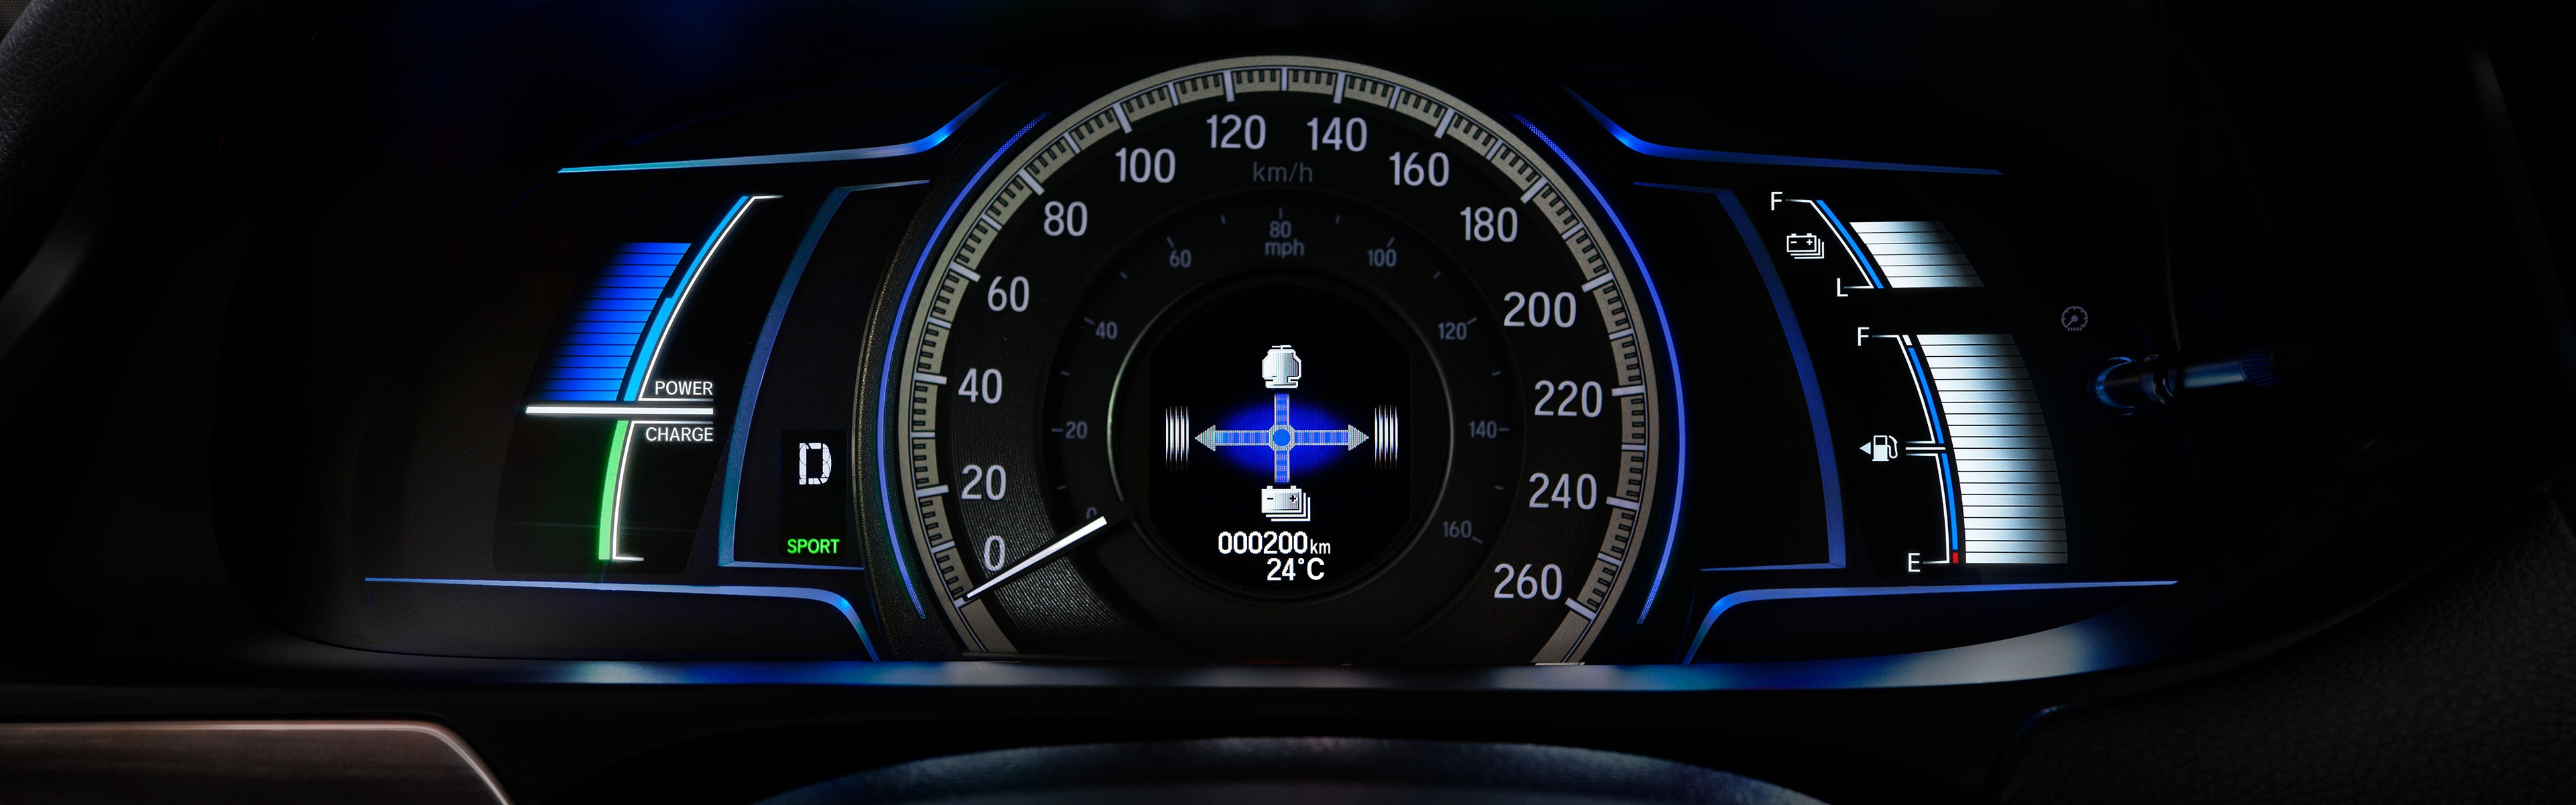 Image of speedometer.